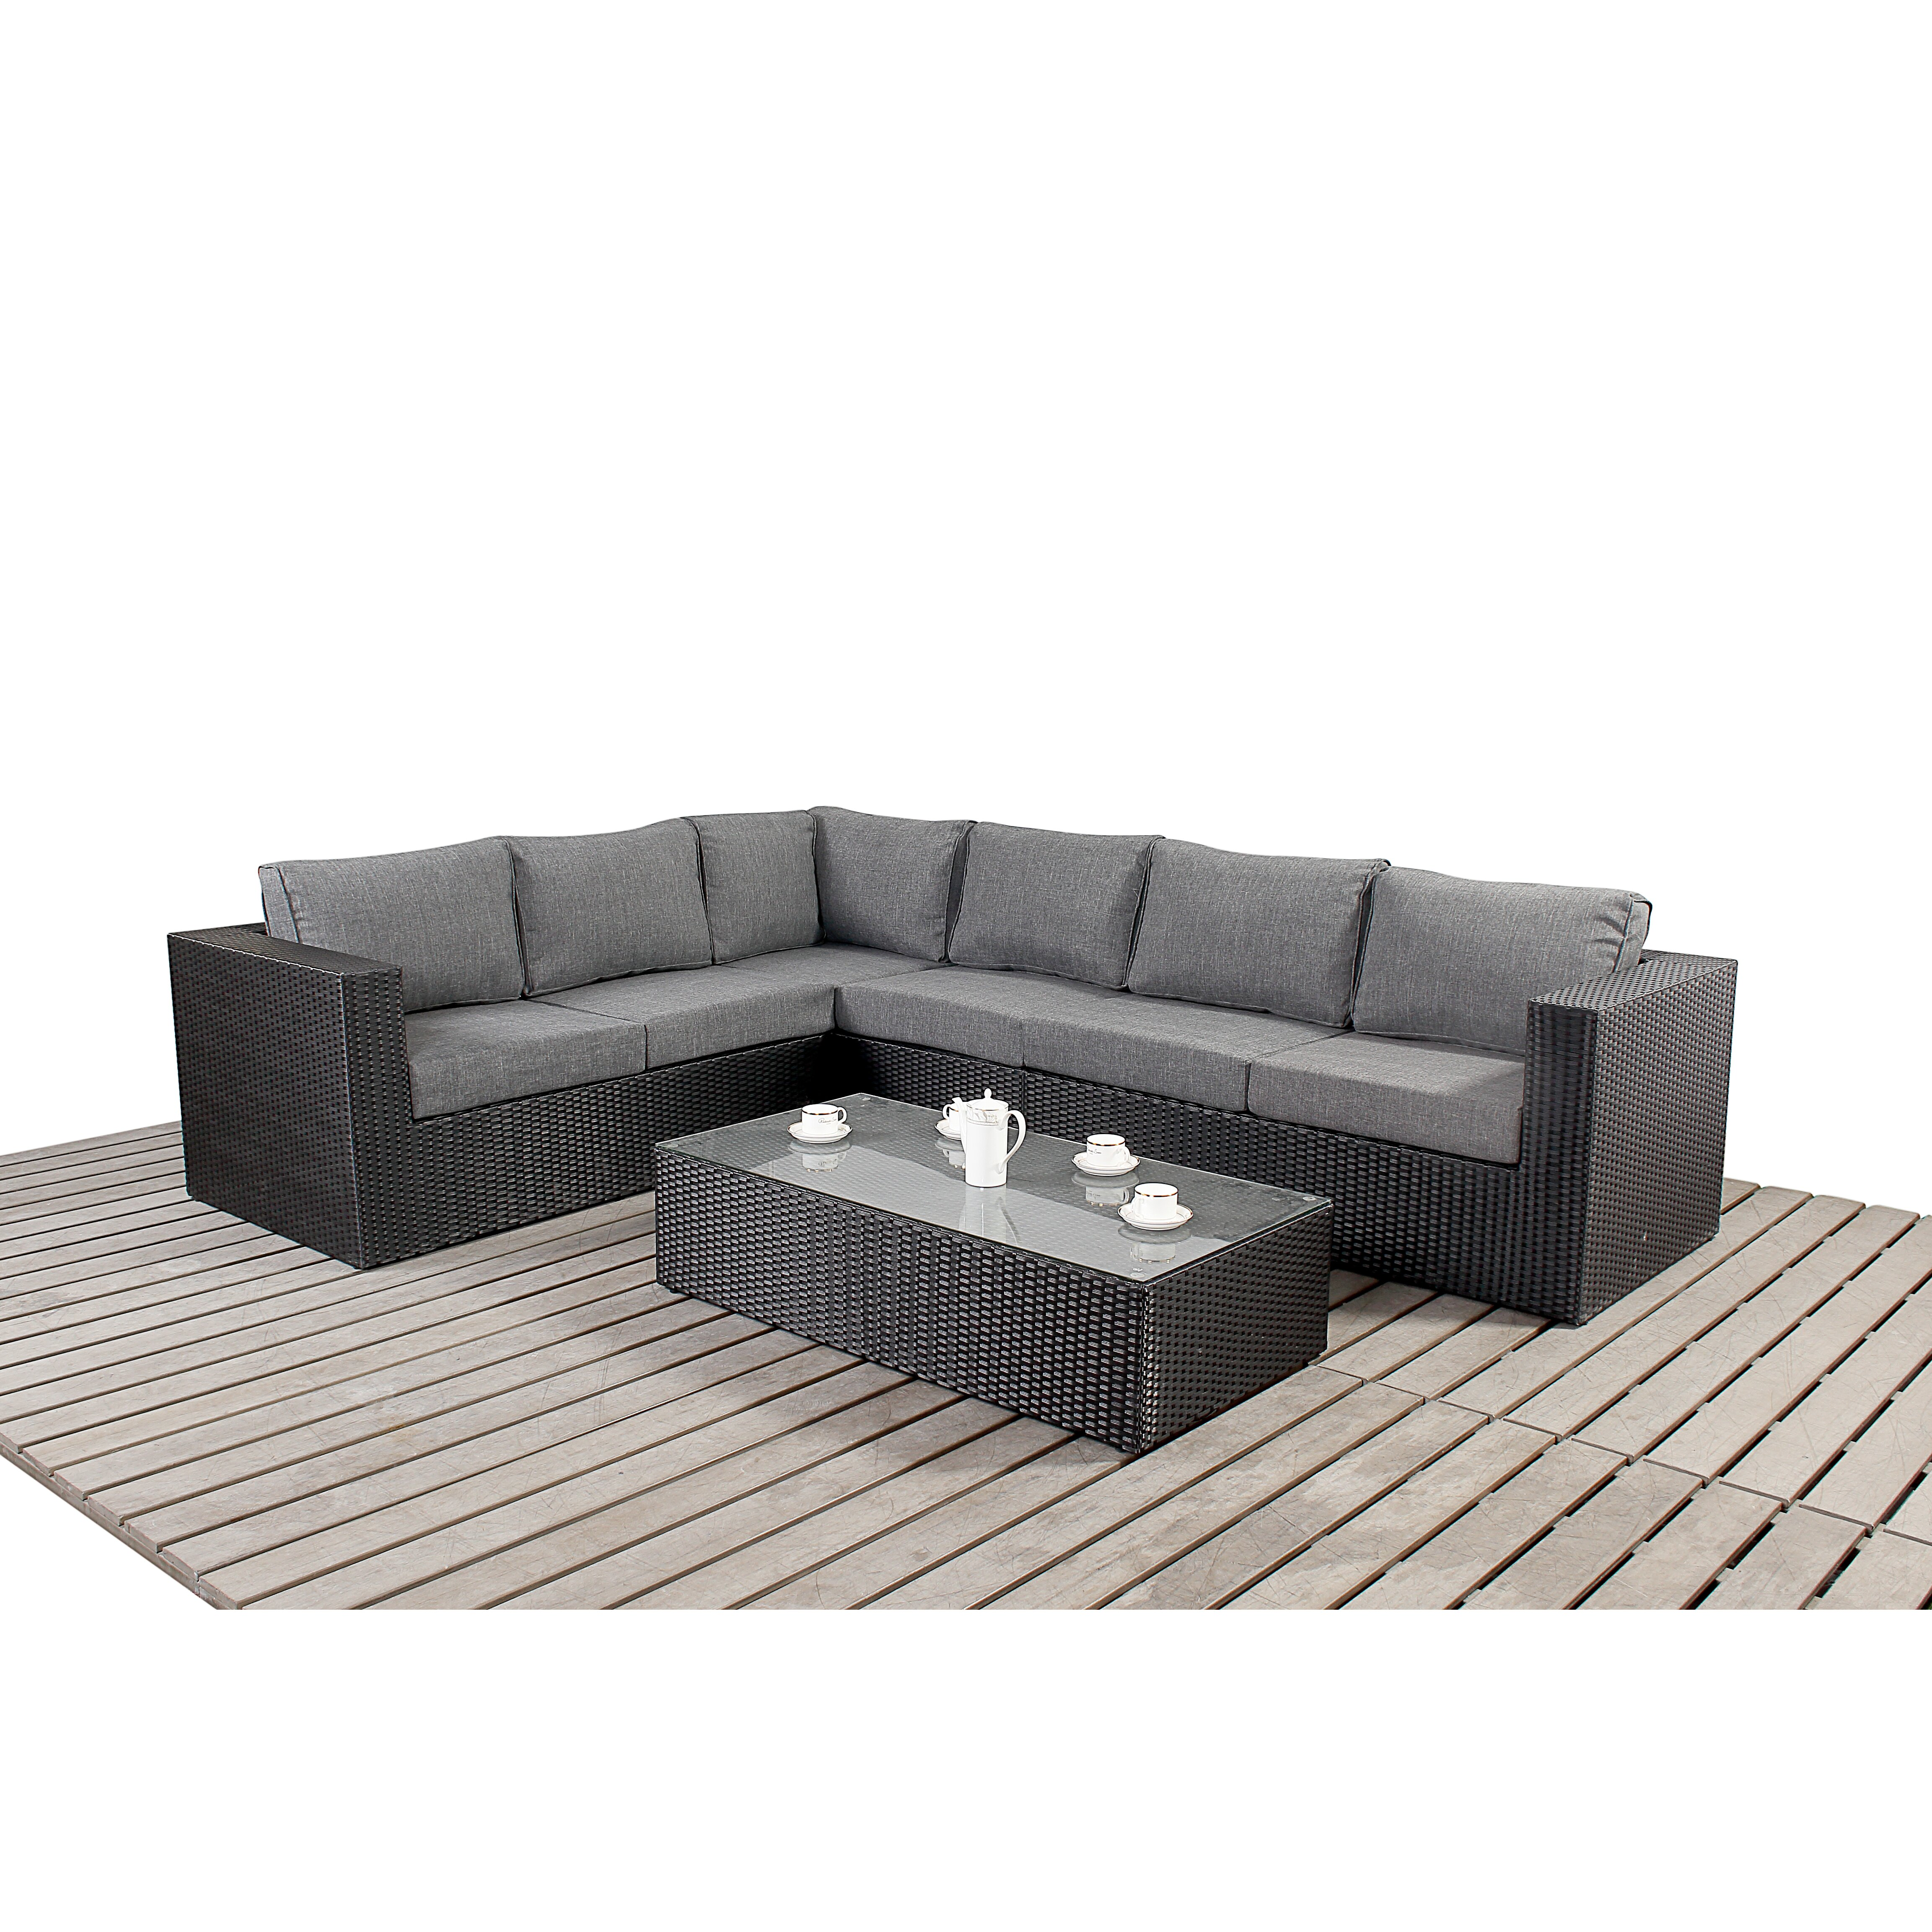 Port royal prestige 6 seater sectional sofa set with for Sofa 6 seater